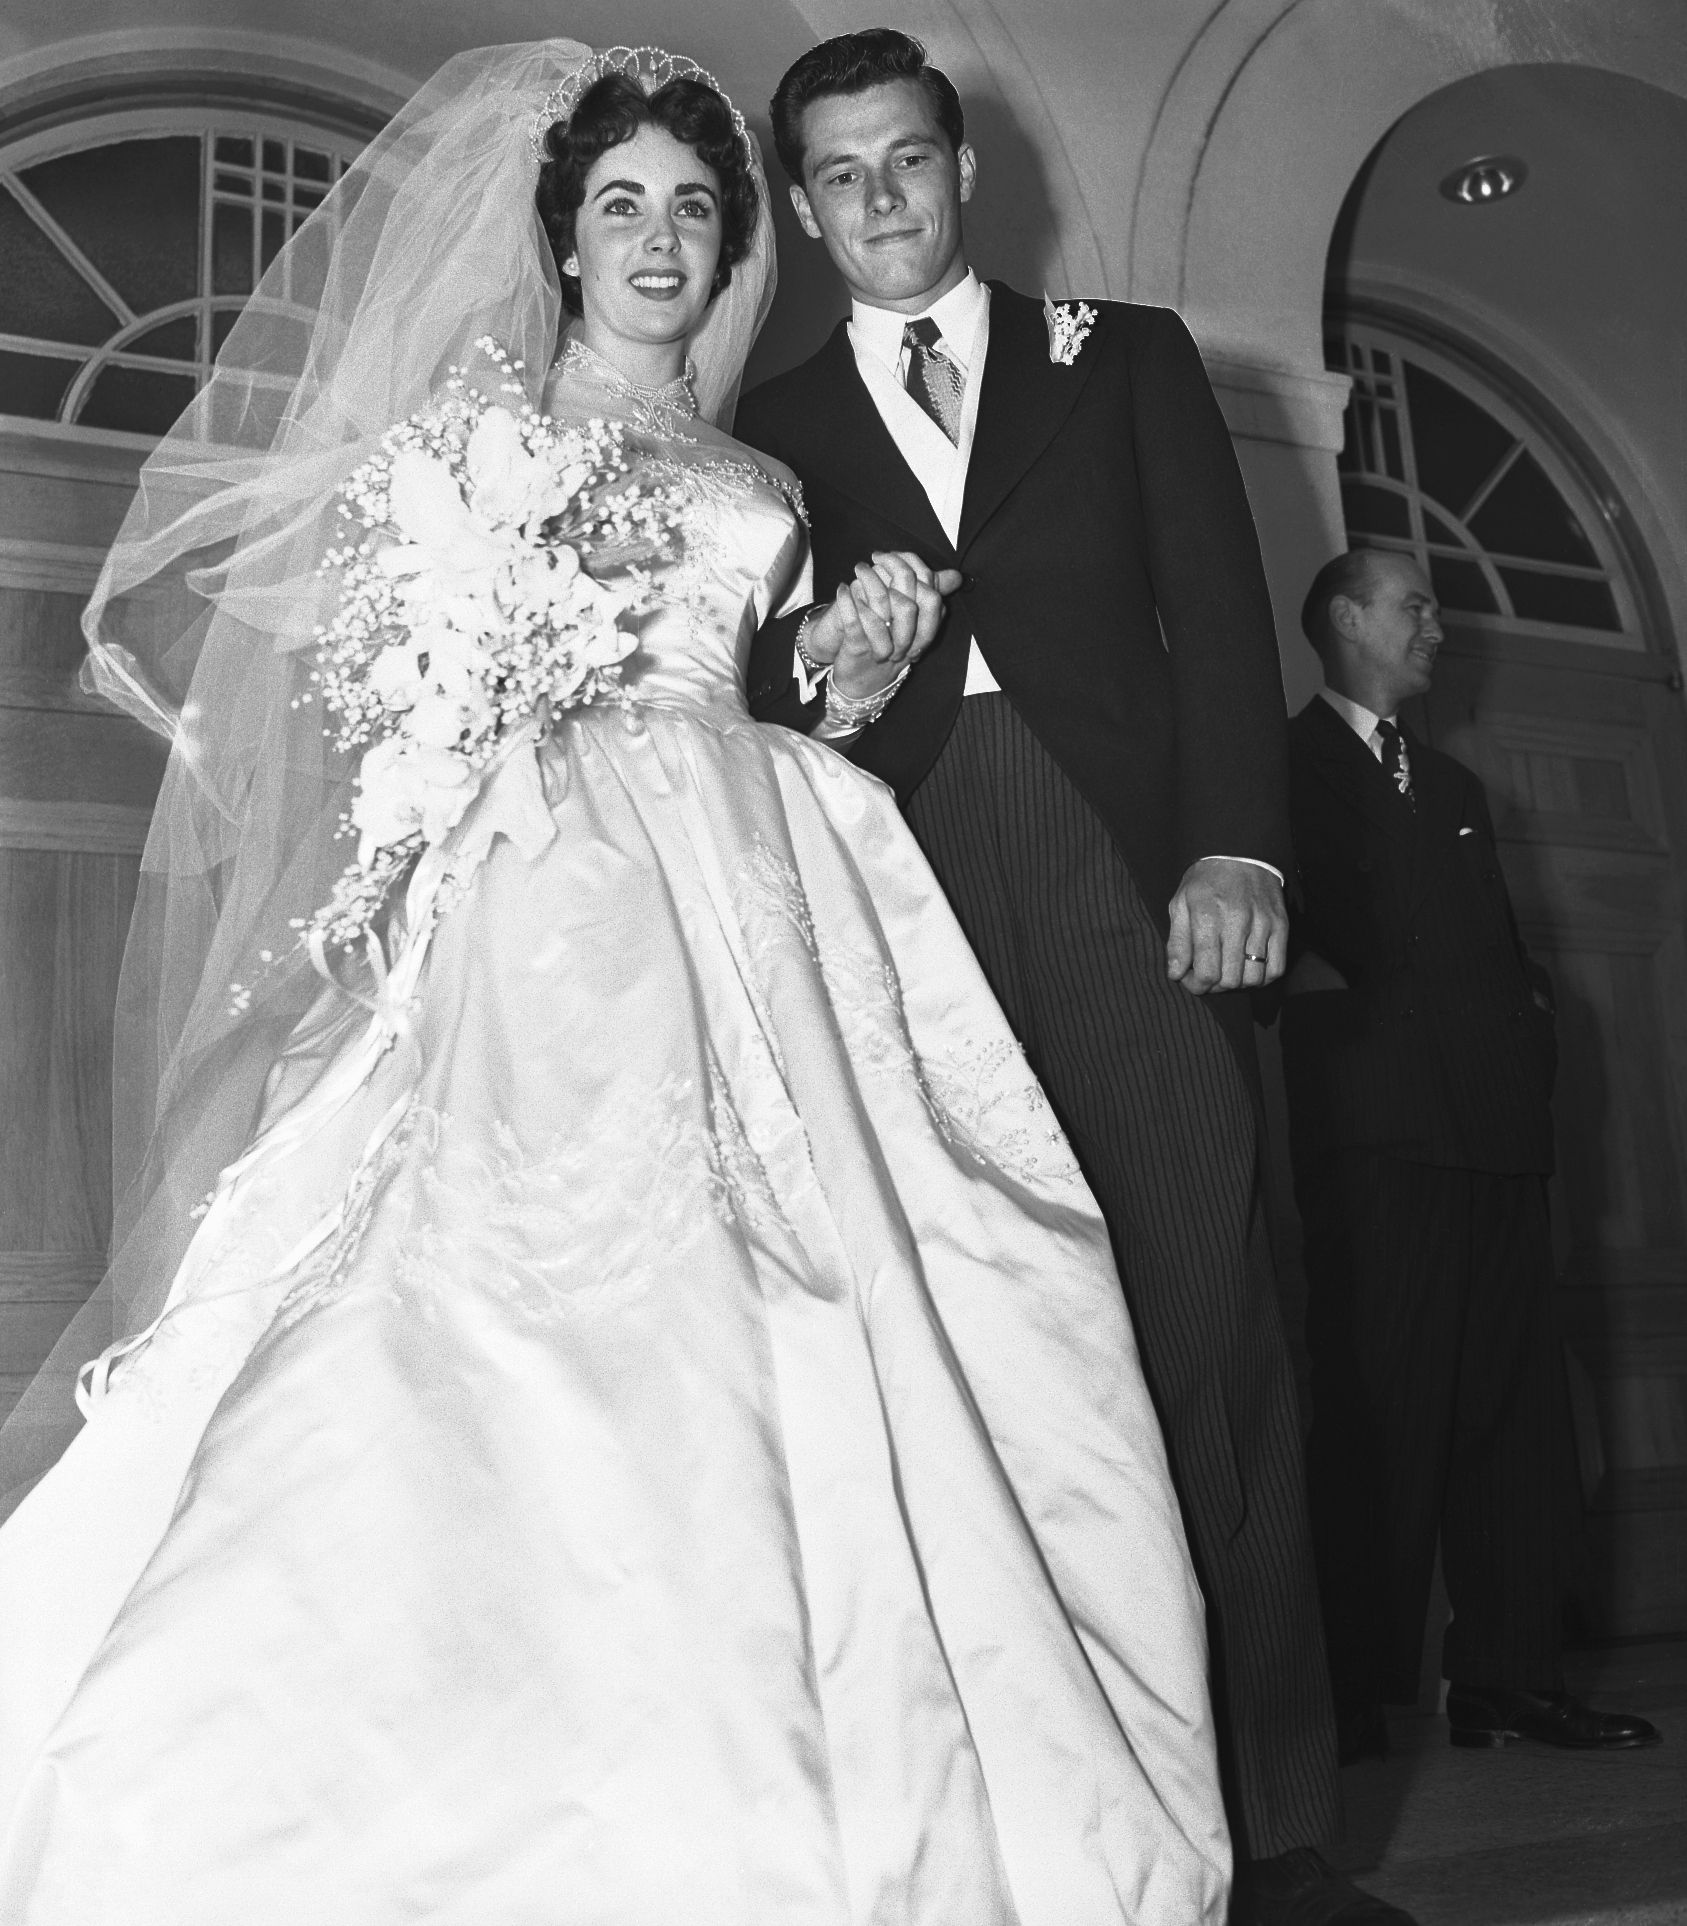 Elizabeth Taylor's First Wedding Dress American hotelier Conrad Hilton's son Nicky Hilton married Elizabeth Taylor when she was just 18 in a ceremony in Beverly Hills. MGM organized the fabulous event, and Elizabeth's dress was designed by famed costume maker Helen Rose.